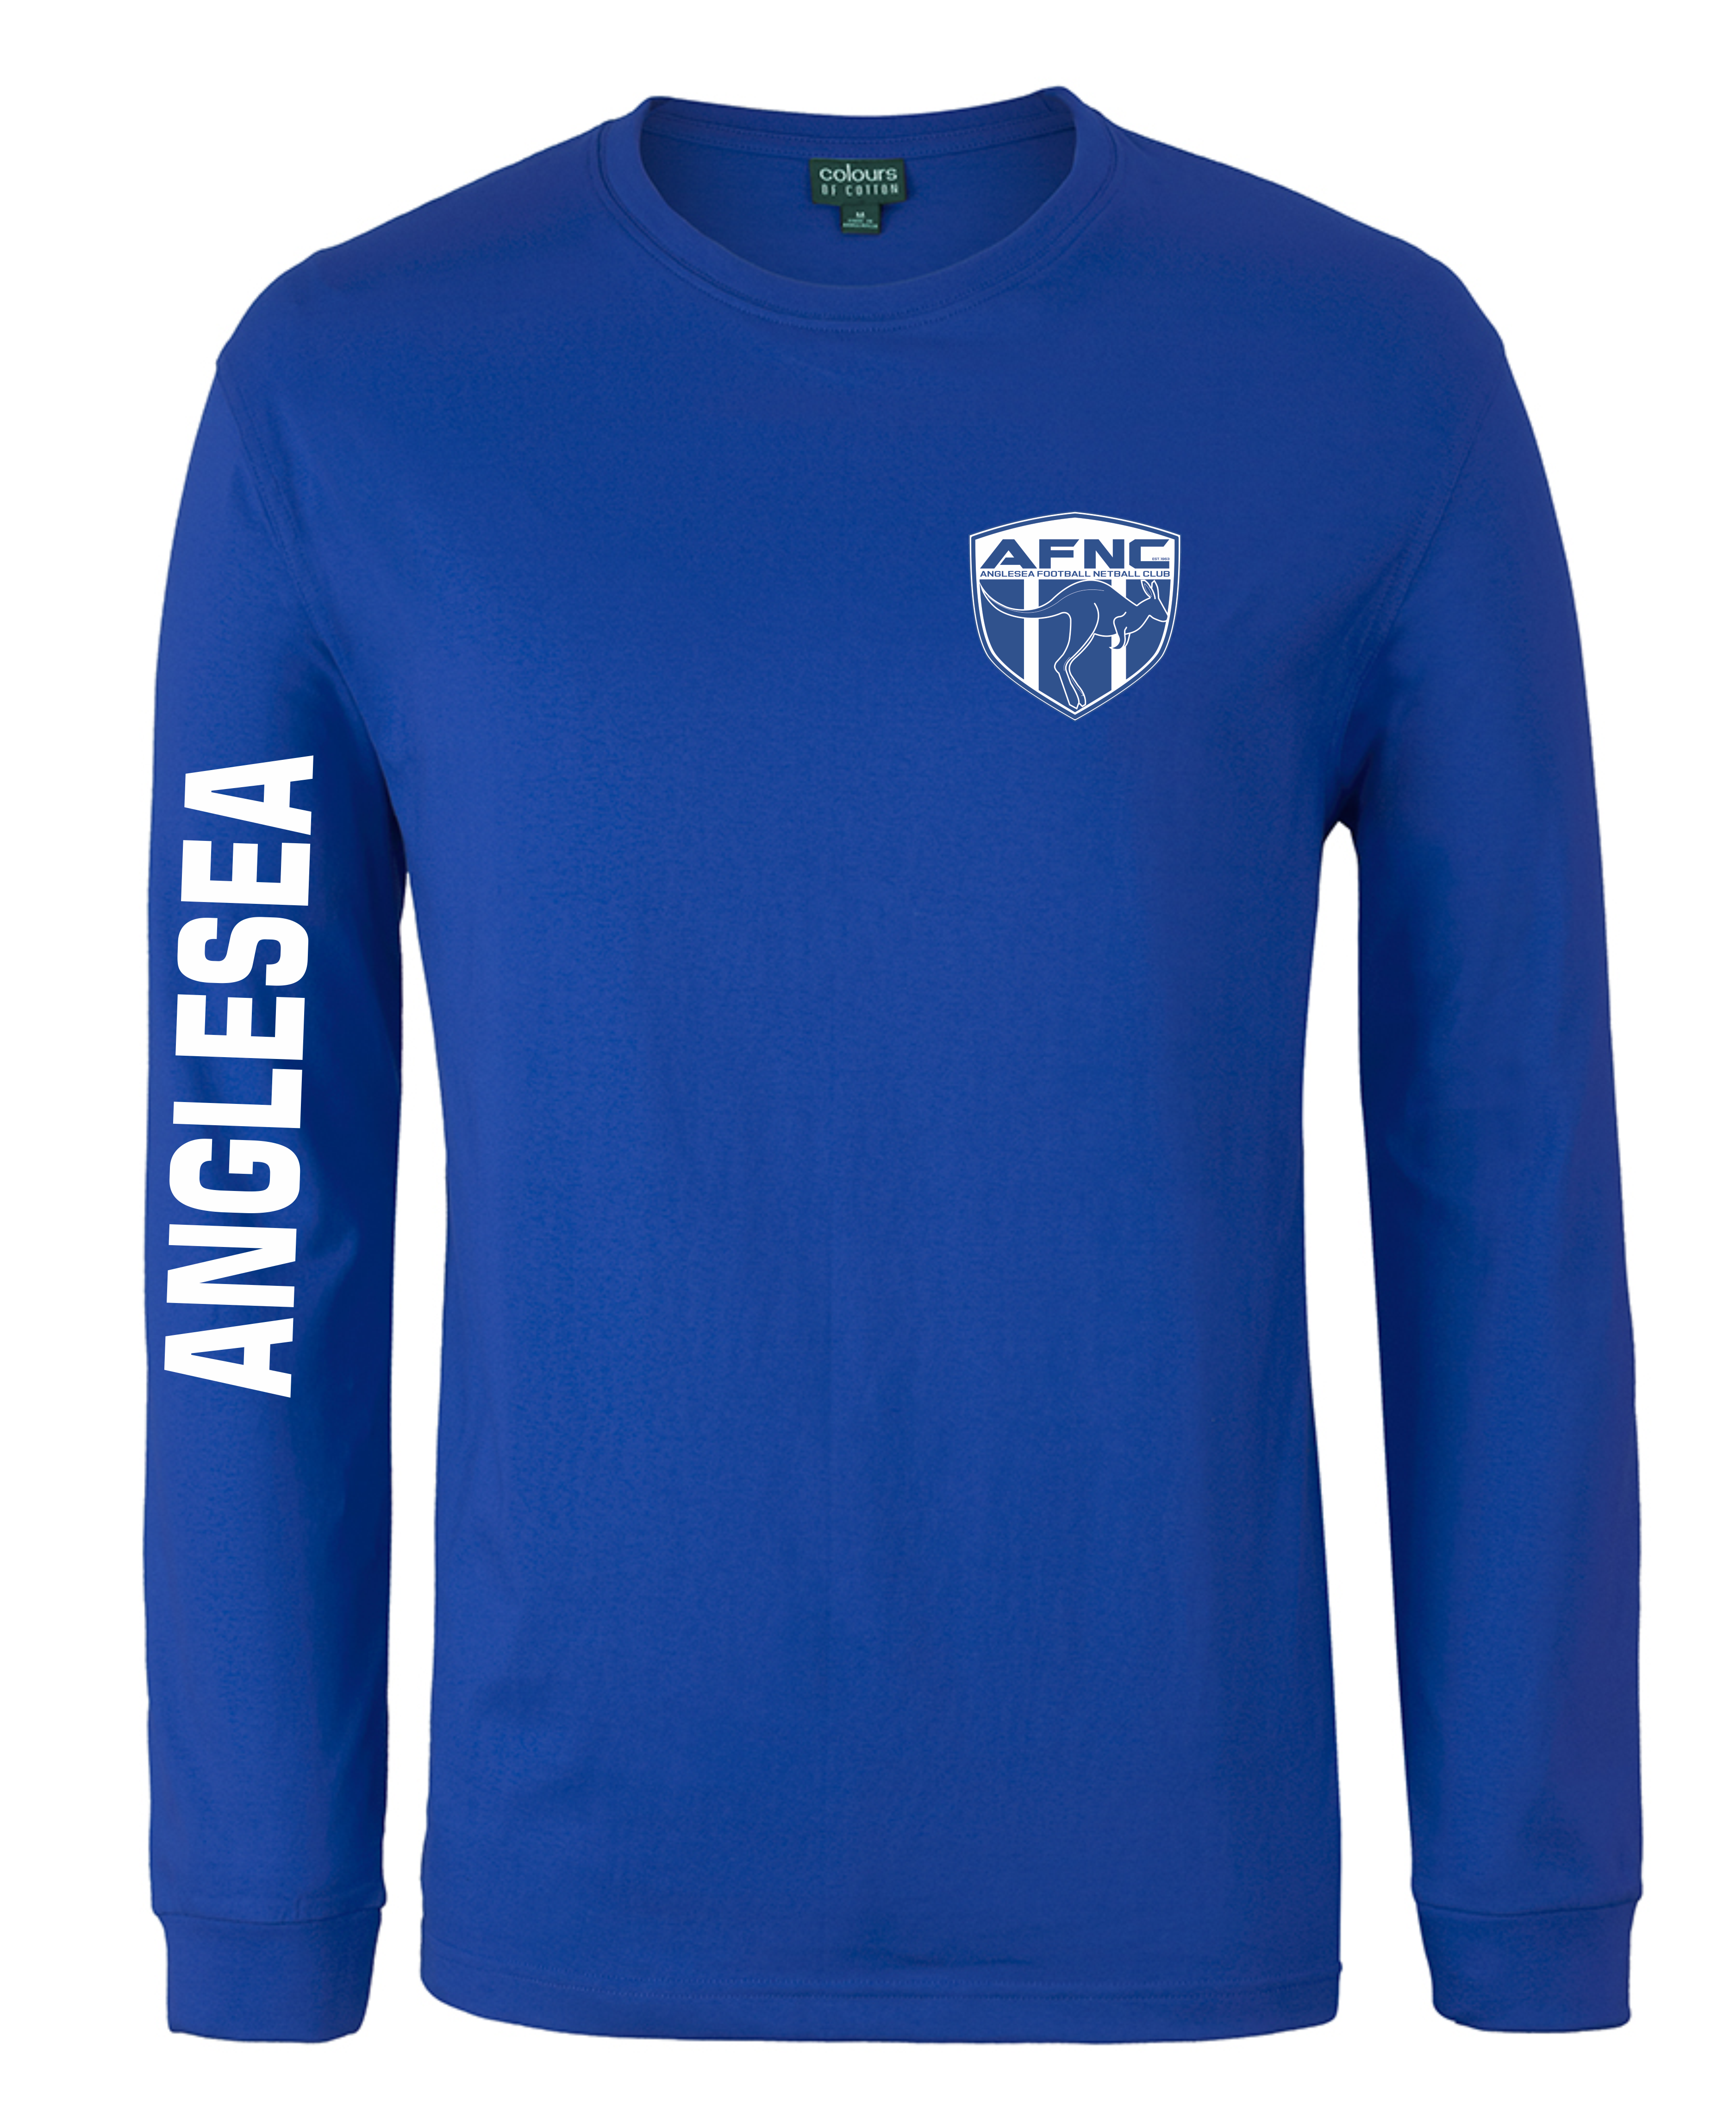 Kids & Adults Unisex Long Sleeve Tee in Royal or White